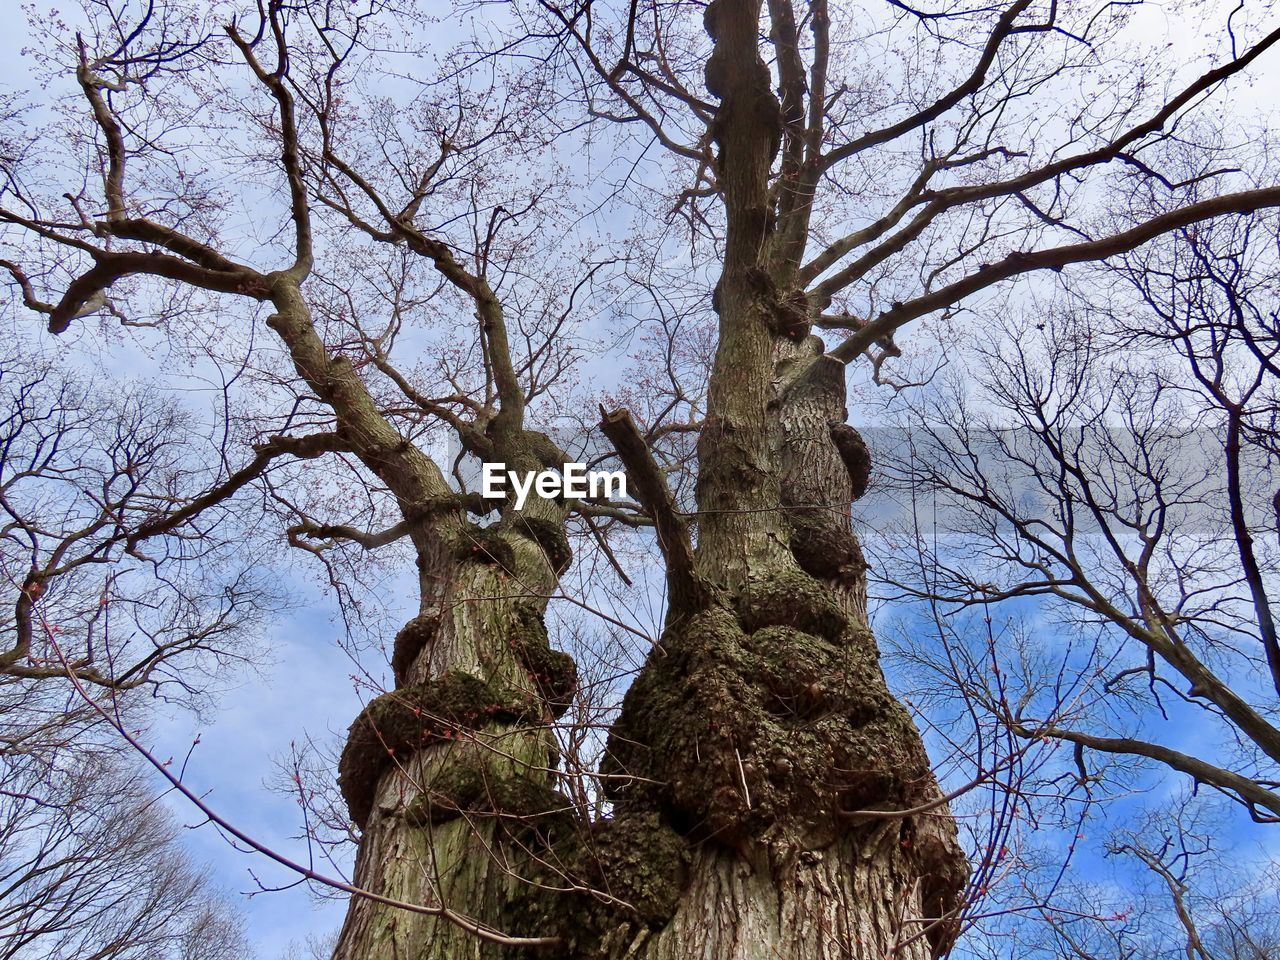 tree, plant, bare tree, low angle view, branch, sky, trunk, tree trunk, nature, tranquility, no people, day, growth, outdoors, beauty in nature, clear sky, non-urban scene, tall - high, scenics - nature, backgrounds, bark, tree canopy